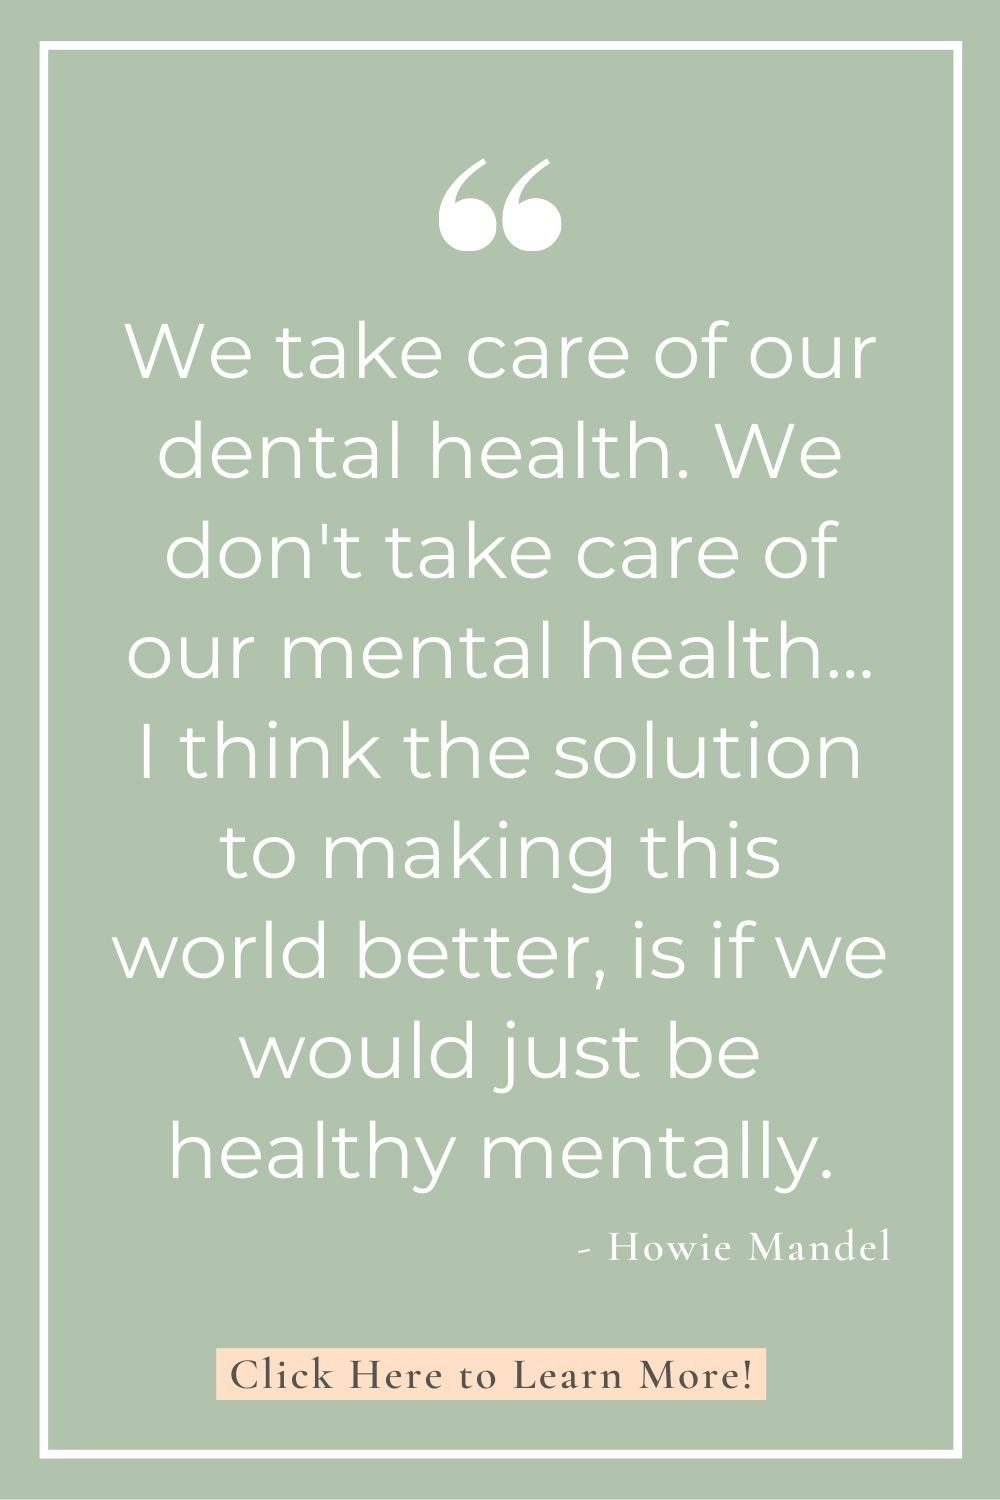 we need to care for our mental health - Howie Mandel Quote